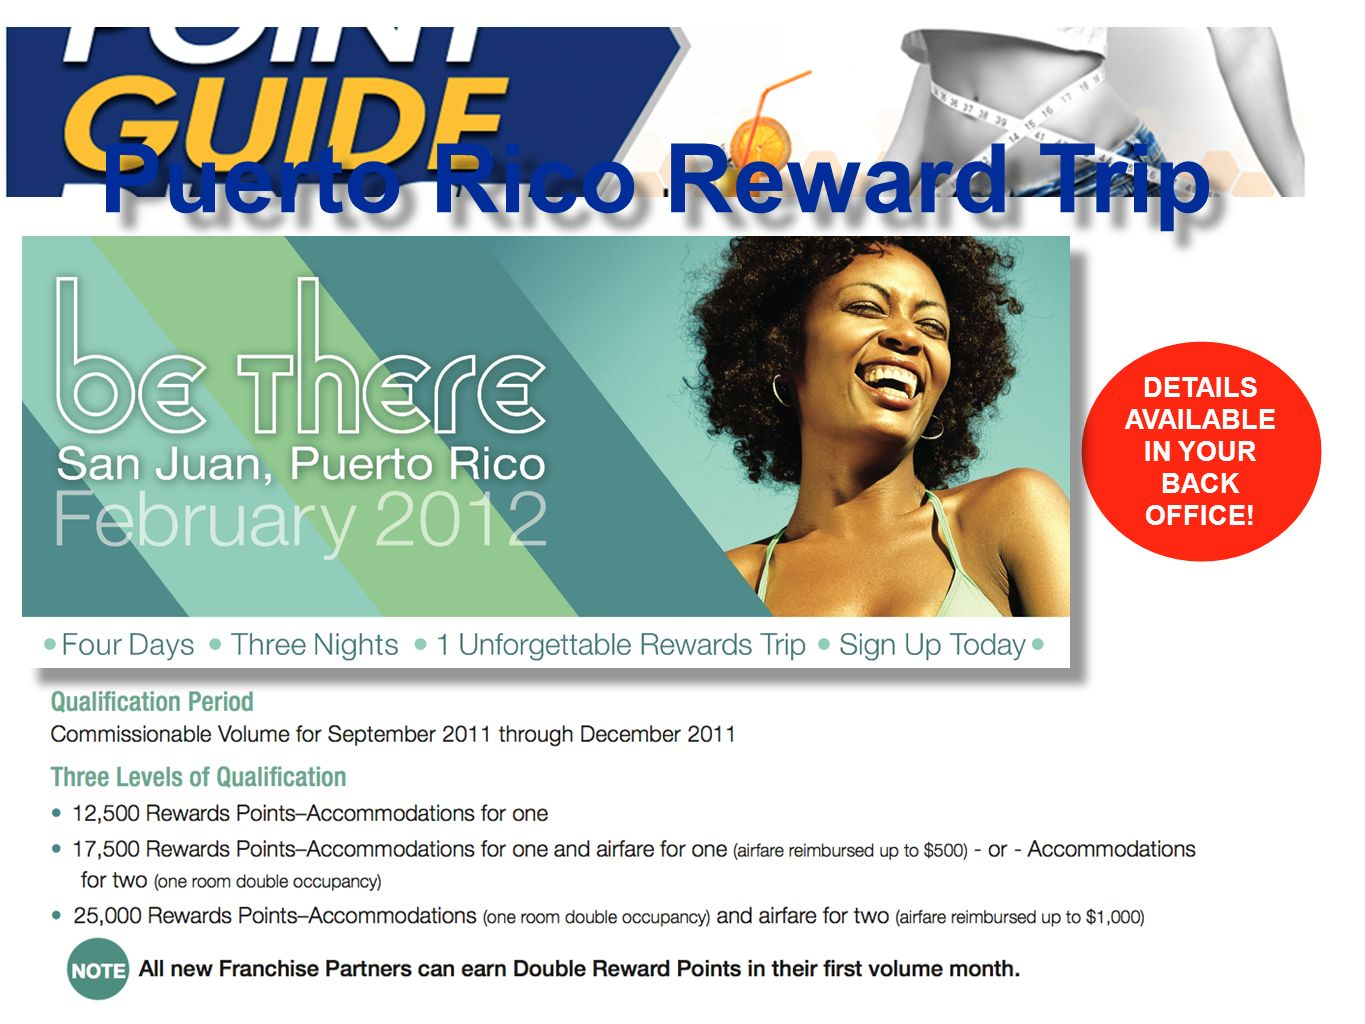 DETAILS AVAILABLE IN YOUR BACK OFFICE! Puerto Rico Reward Trip